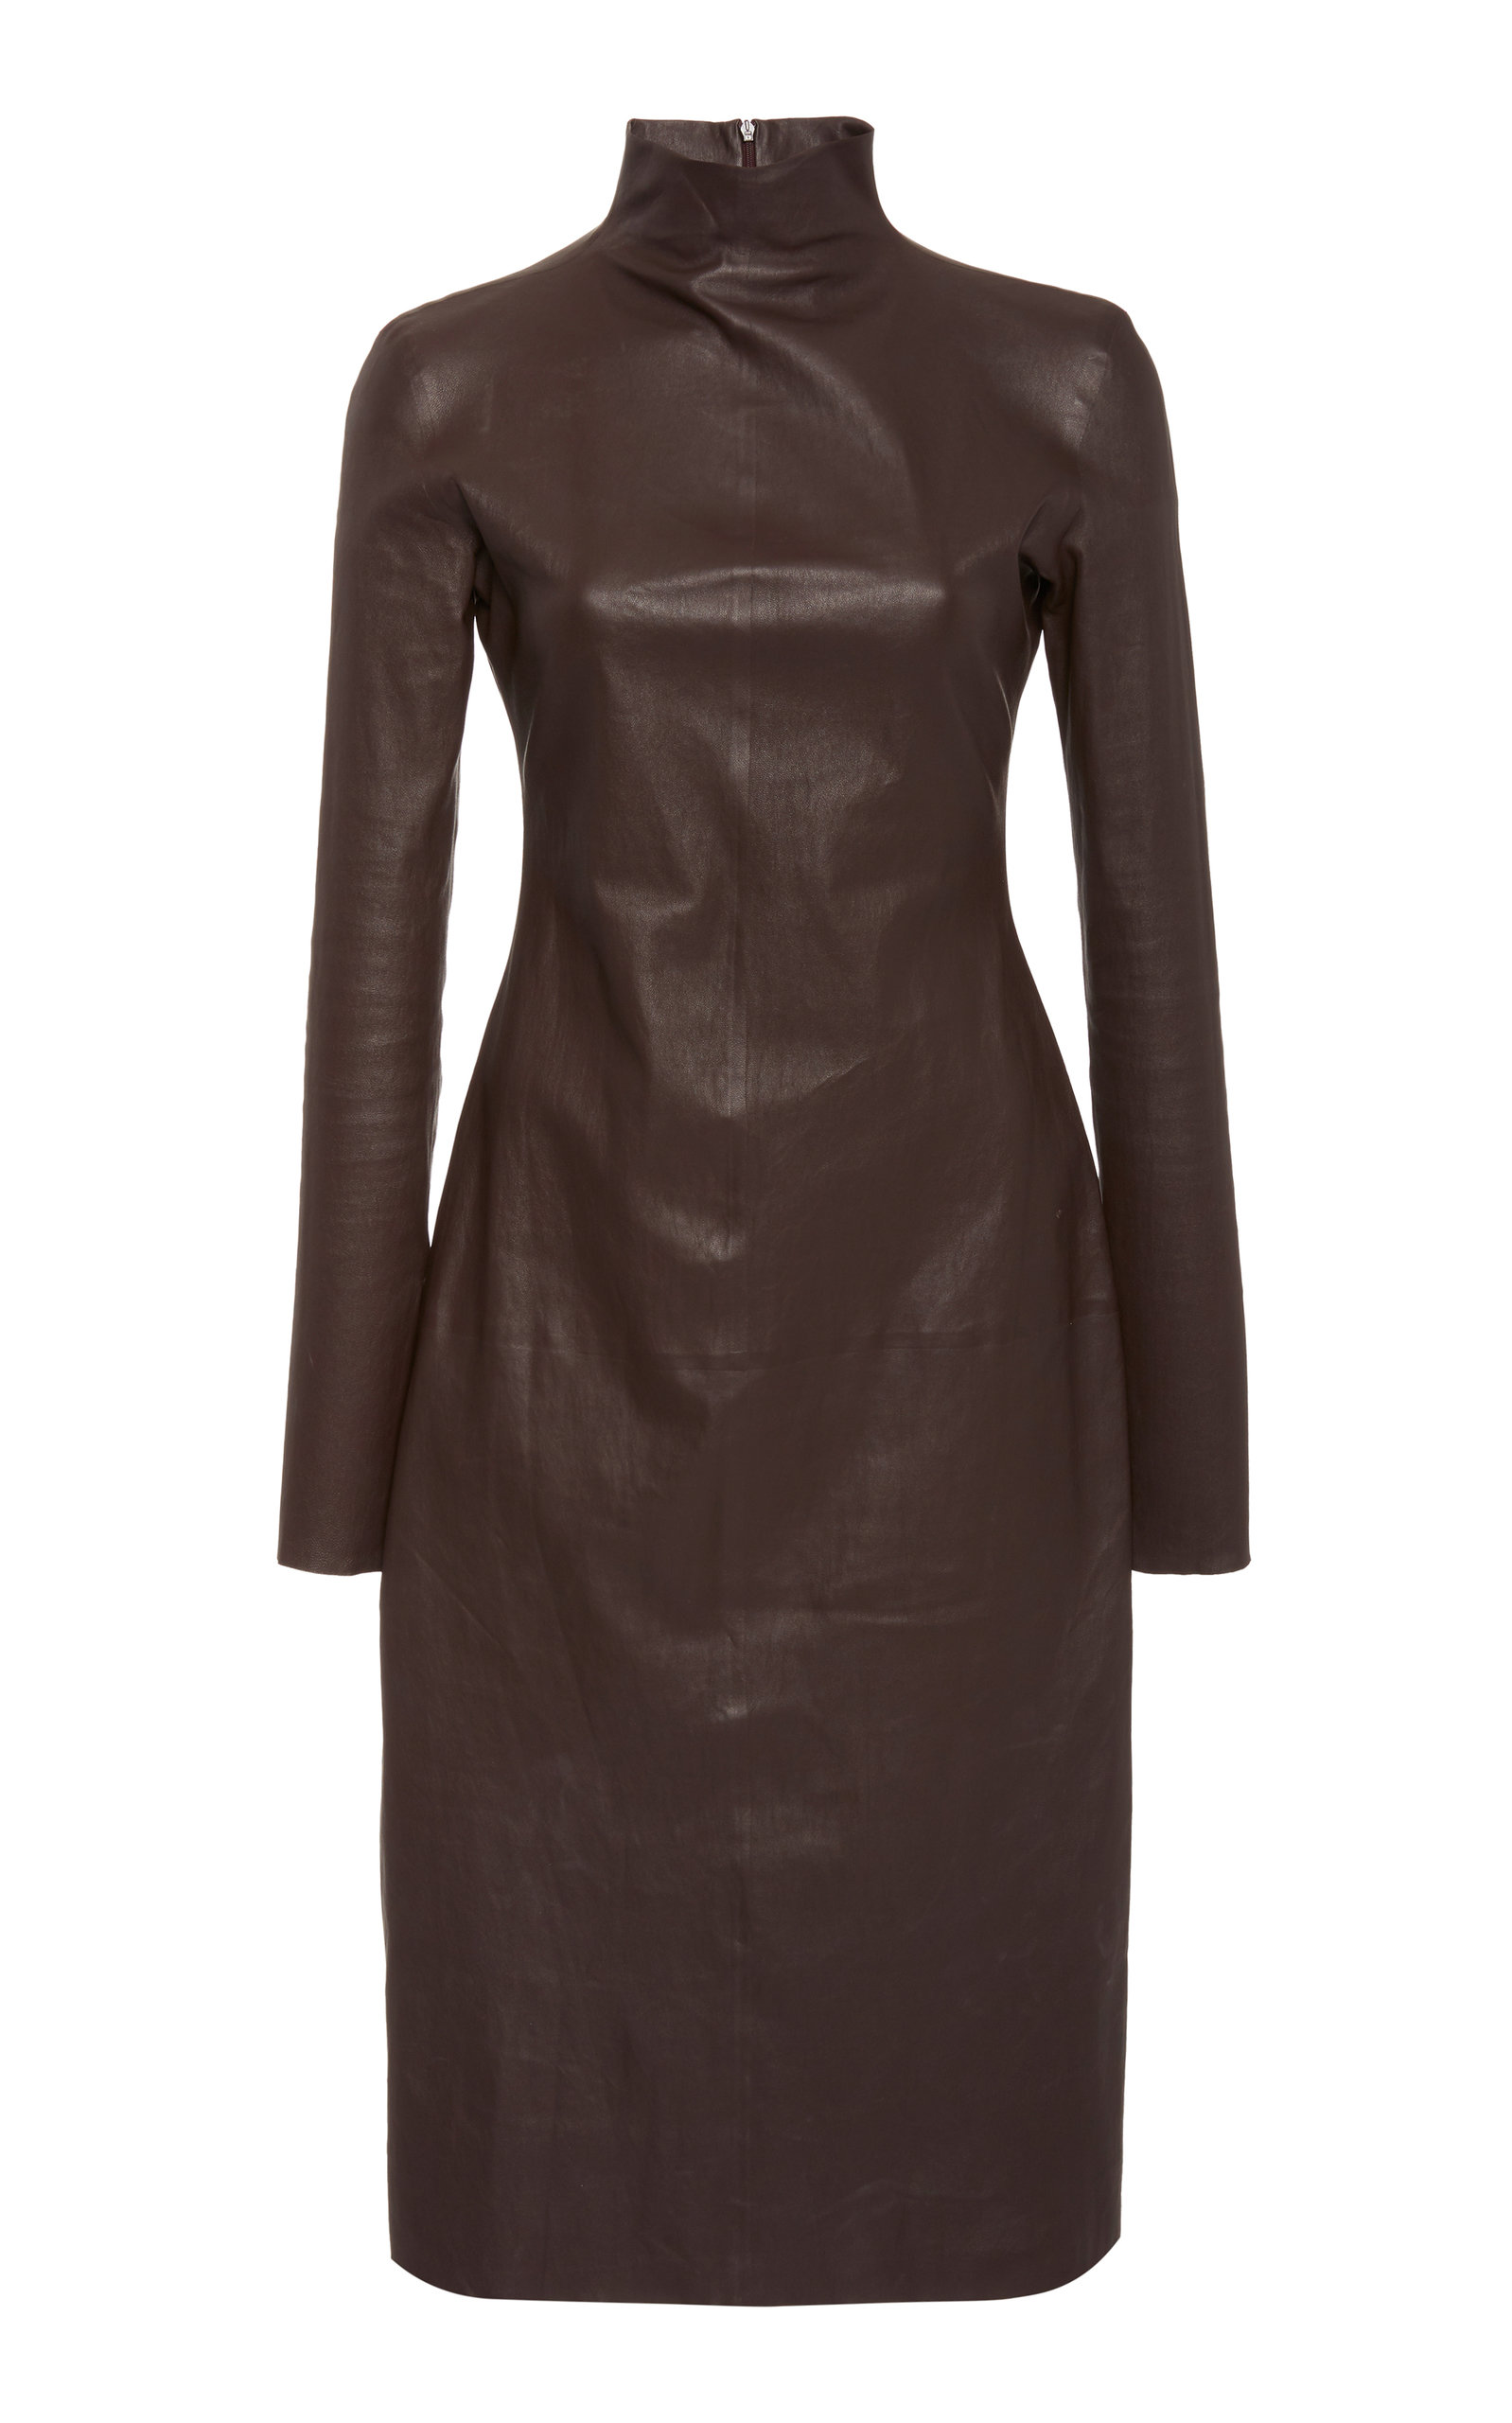 Buy Bottega Veneta Mock Neck Leather Dress online, shop Bottega Veneta at the best price